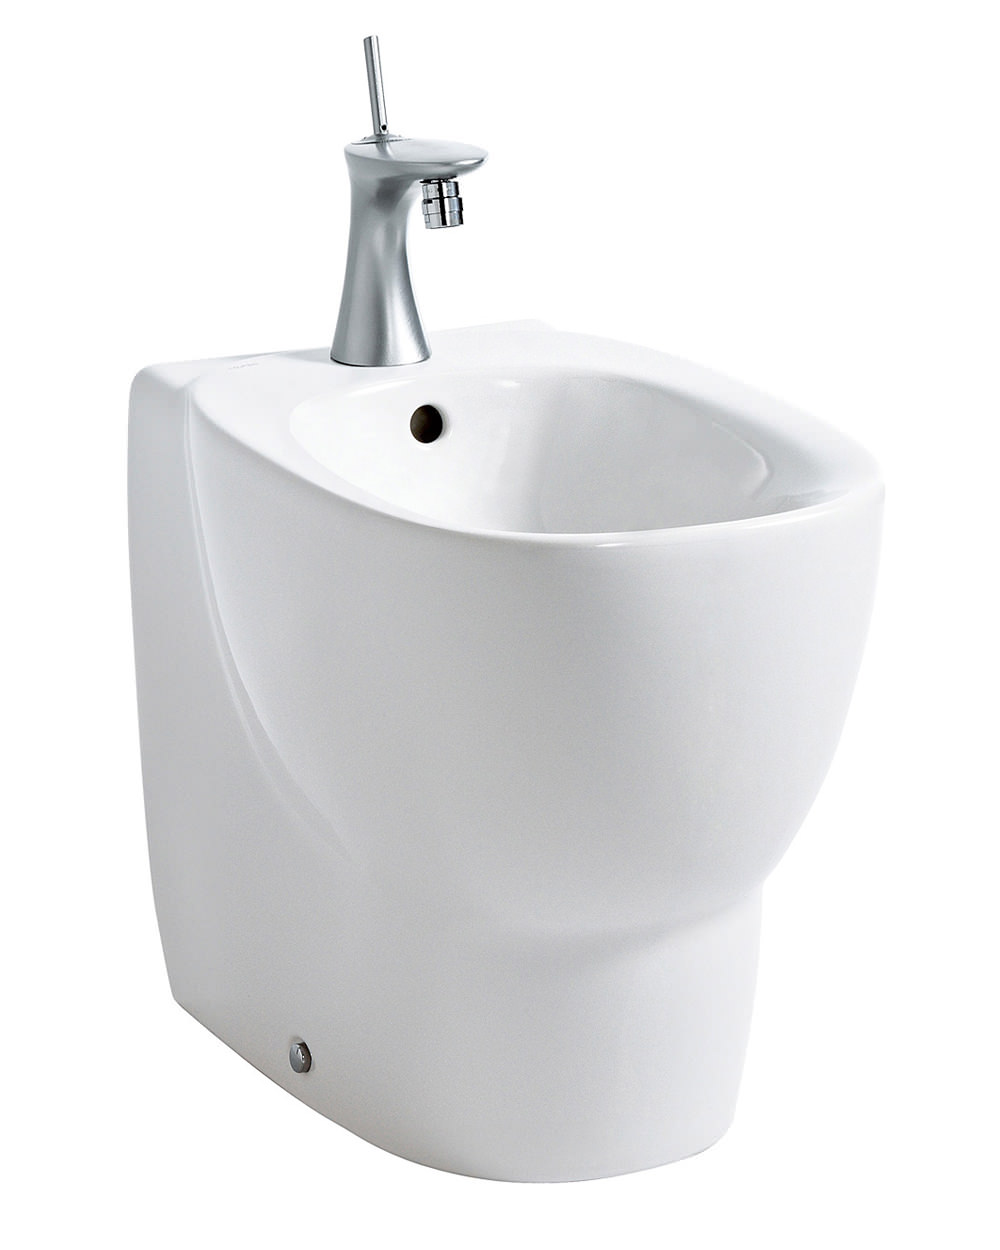 laufen mimo 1 tap hole floorstanding back to wall bidet. Black Bedroom Furniture Sets. Home Design Ideas